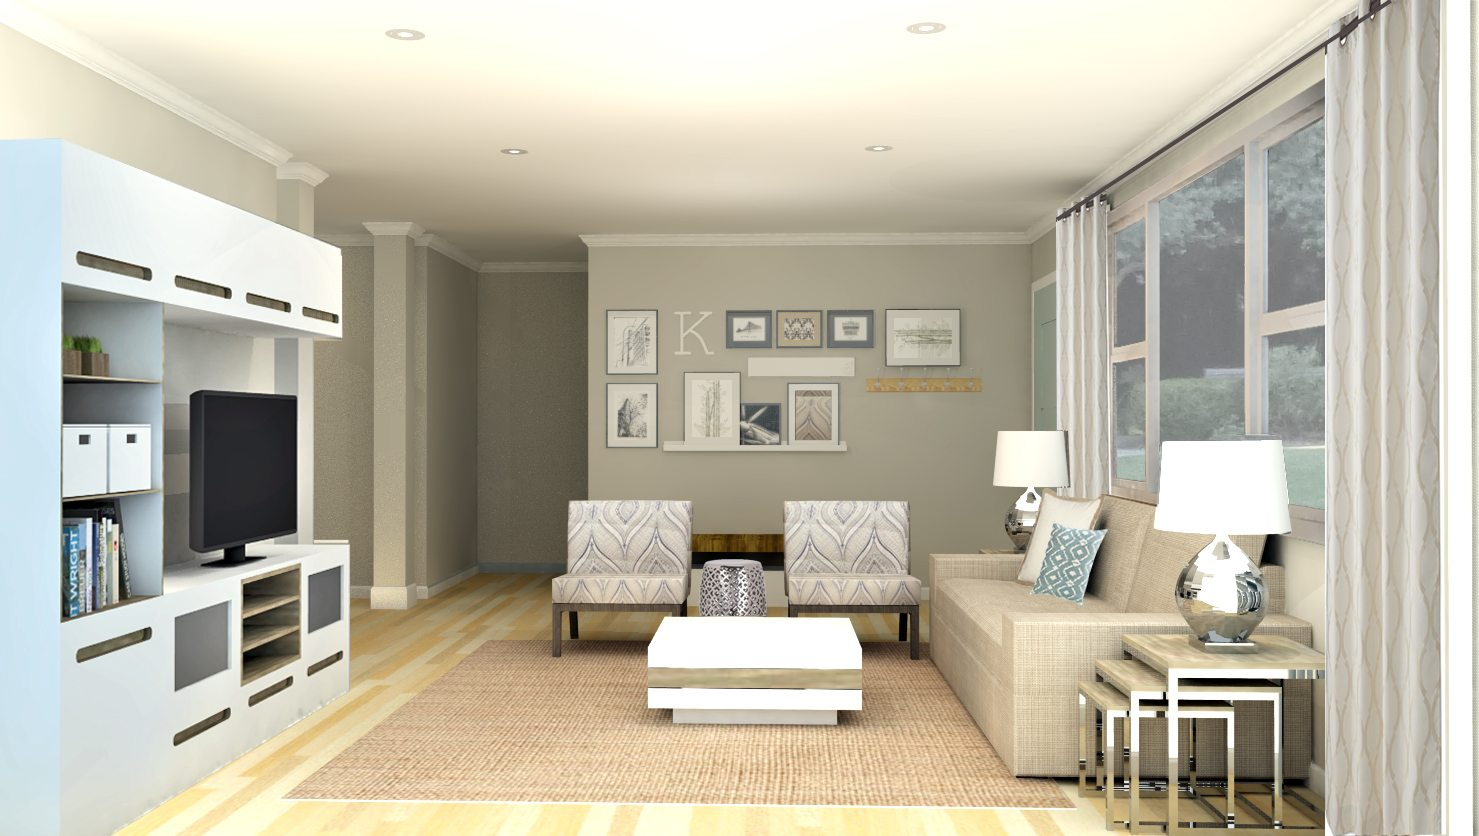 Interior home design services from a space to call home for Virtual interior home design